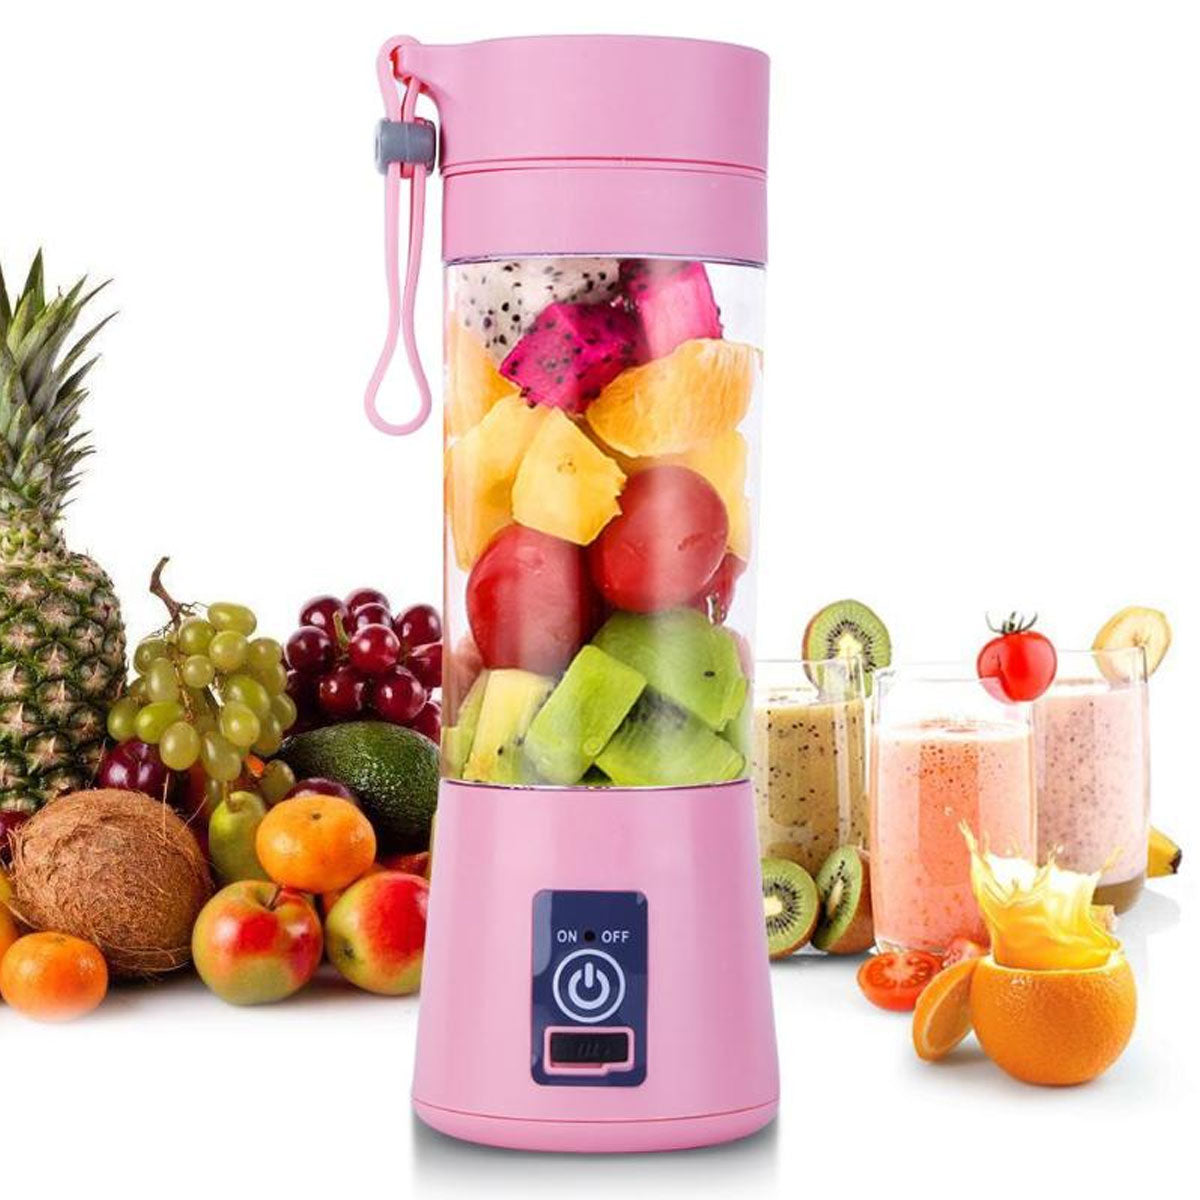 Stylish & Portable Blender & Smoothie Maker with Rechargeable Battery